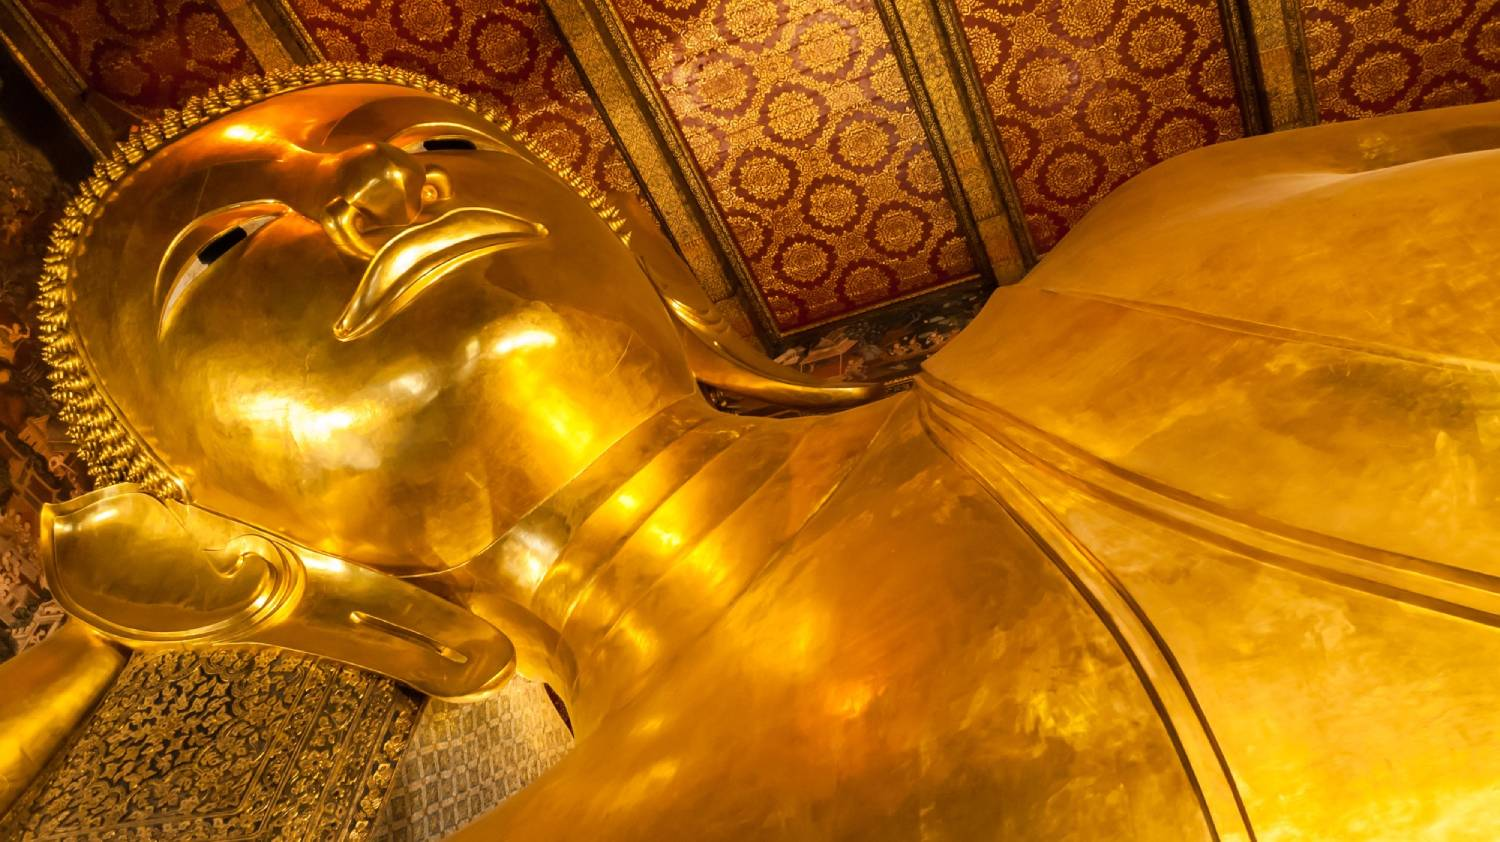 Temple of the Reclining Buddha (Wat Pho) - Things To Do In Bangkok